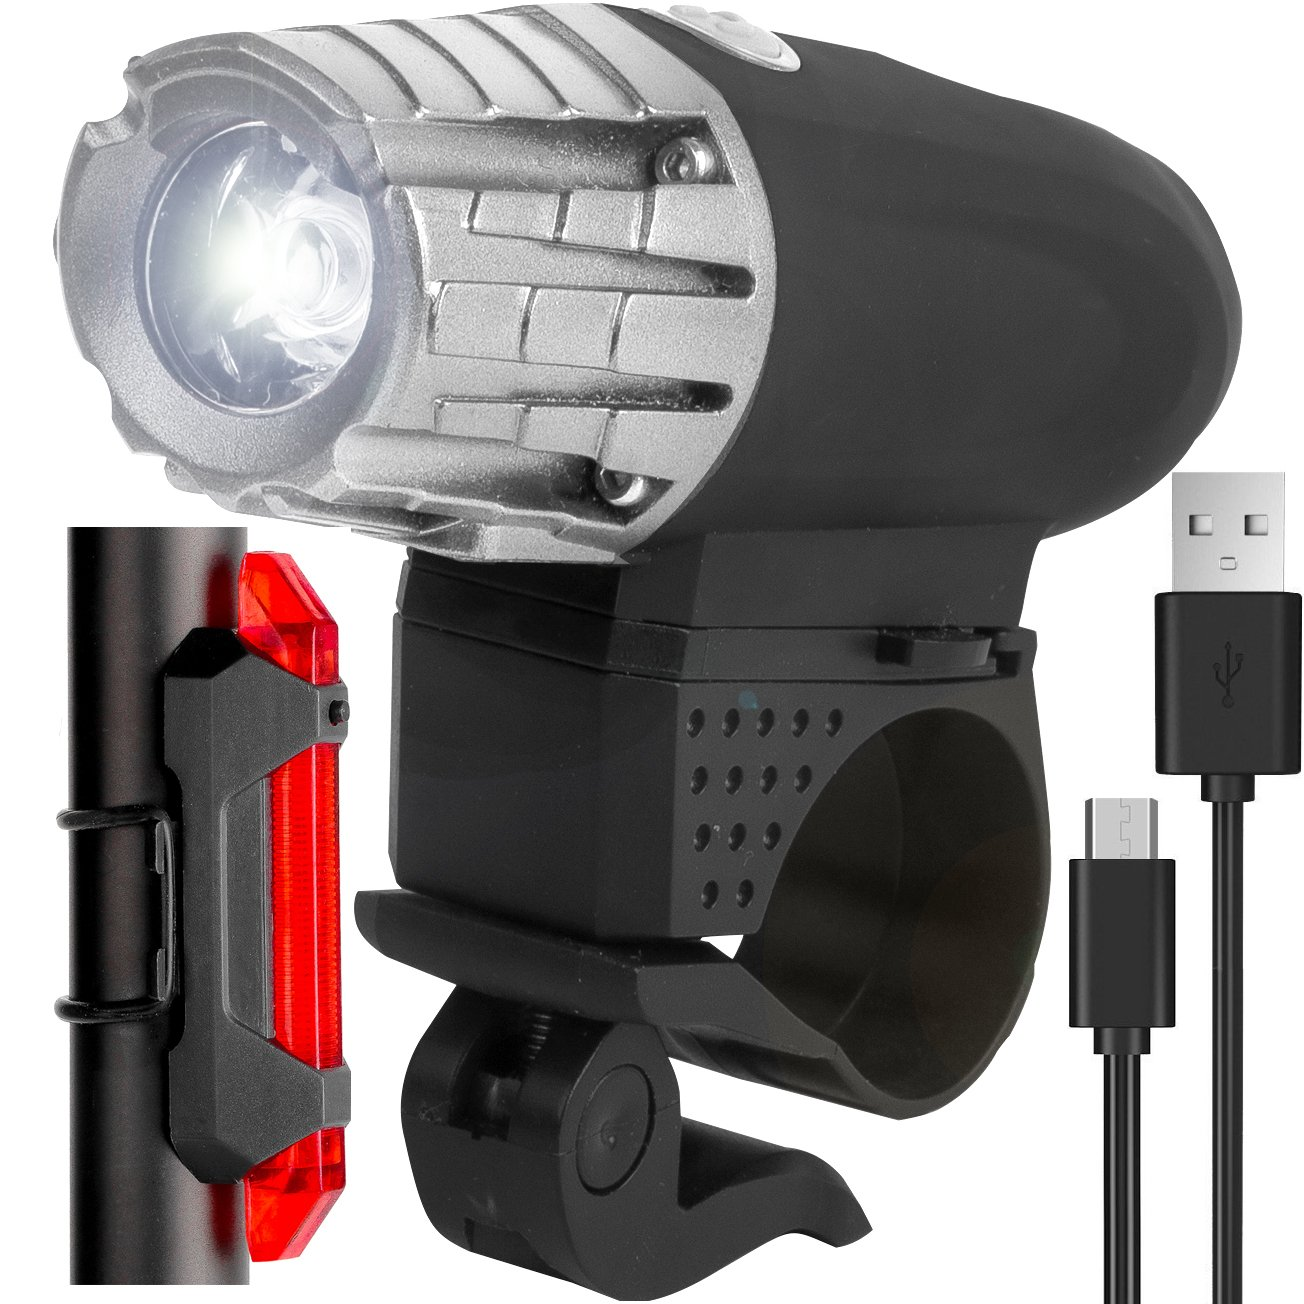 Harcas Bike Lights Set Super Bright LED Front and Rear Cycle Lights. USB Rechargeable.